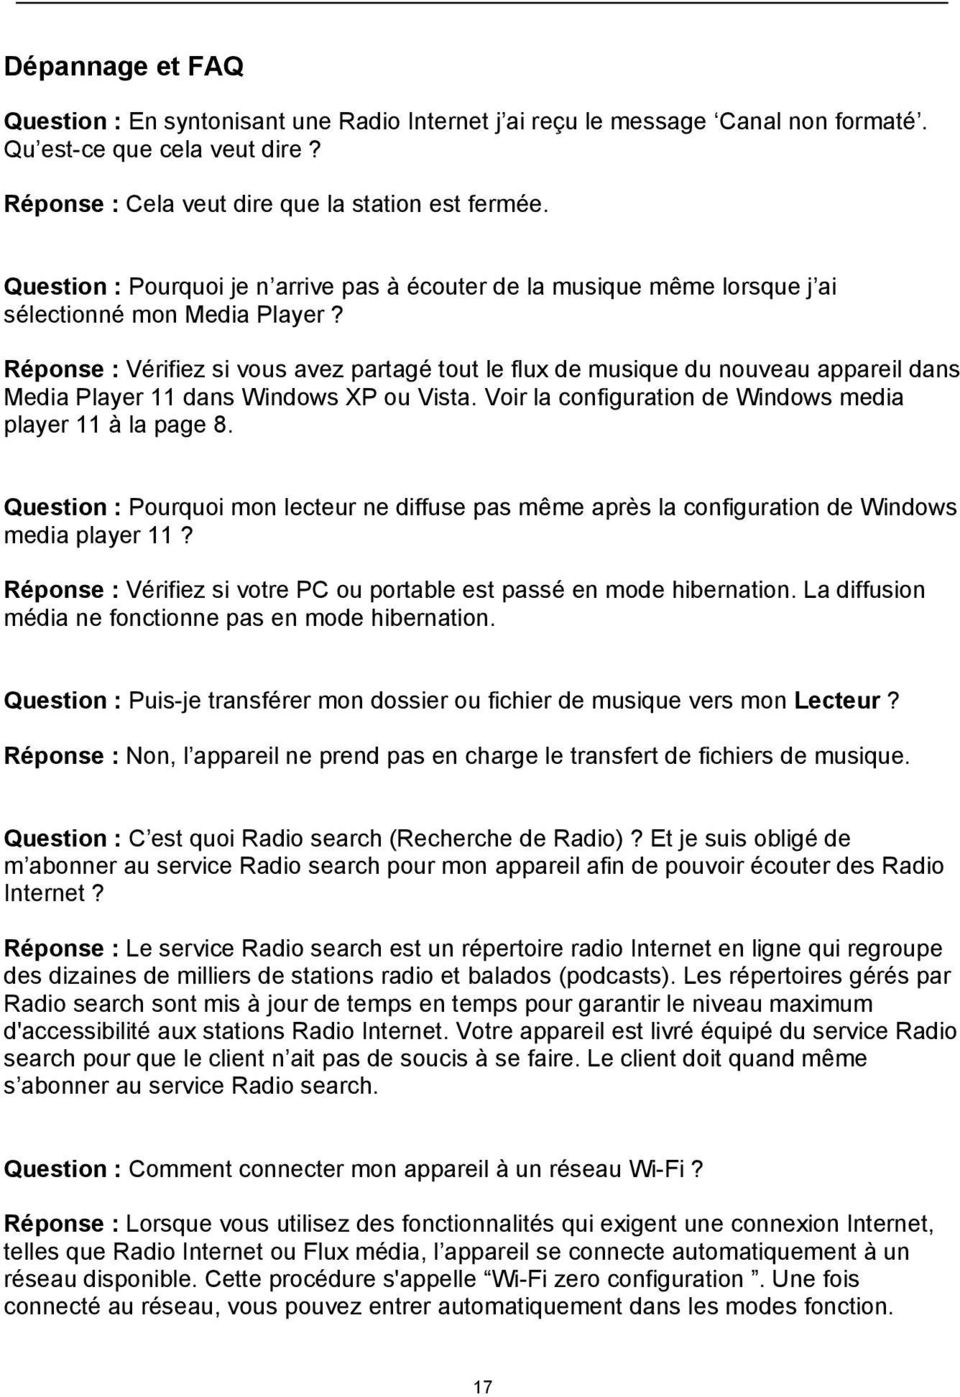 Réponse : Vérifiez si vous avez partagé tout le flux de musique du nouveau appareil dans Media Player 11 dans Windows XP ou Vista. Voir la configuration de Windows media player 11 à la page 8.